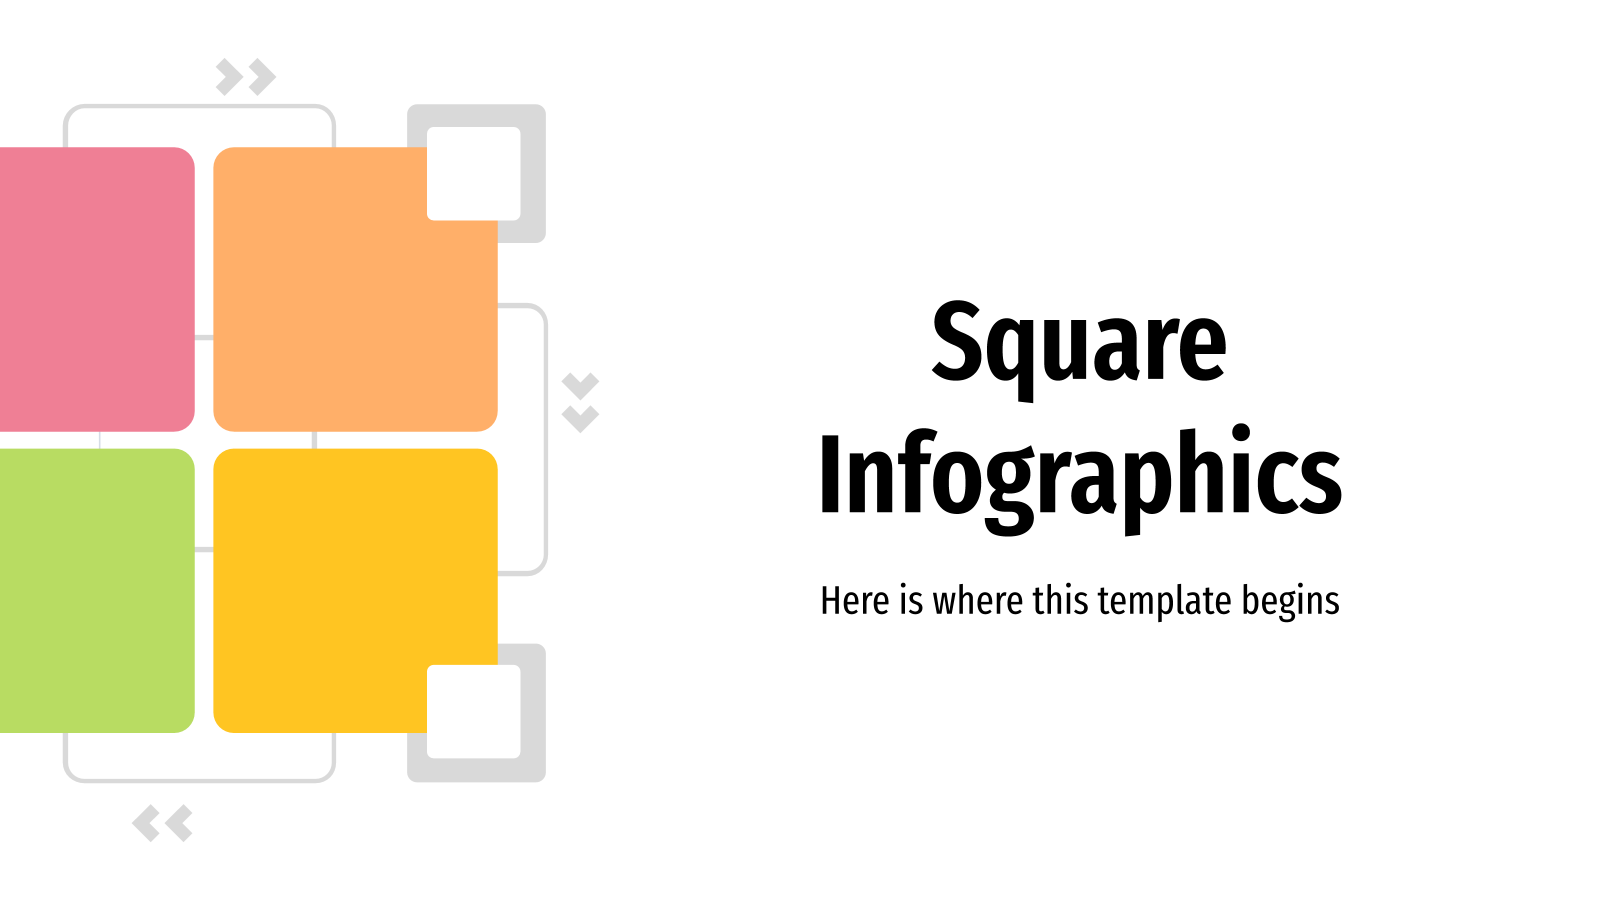 Square Infographics presentation template